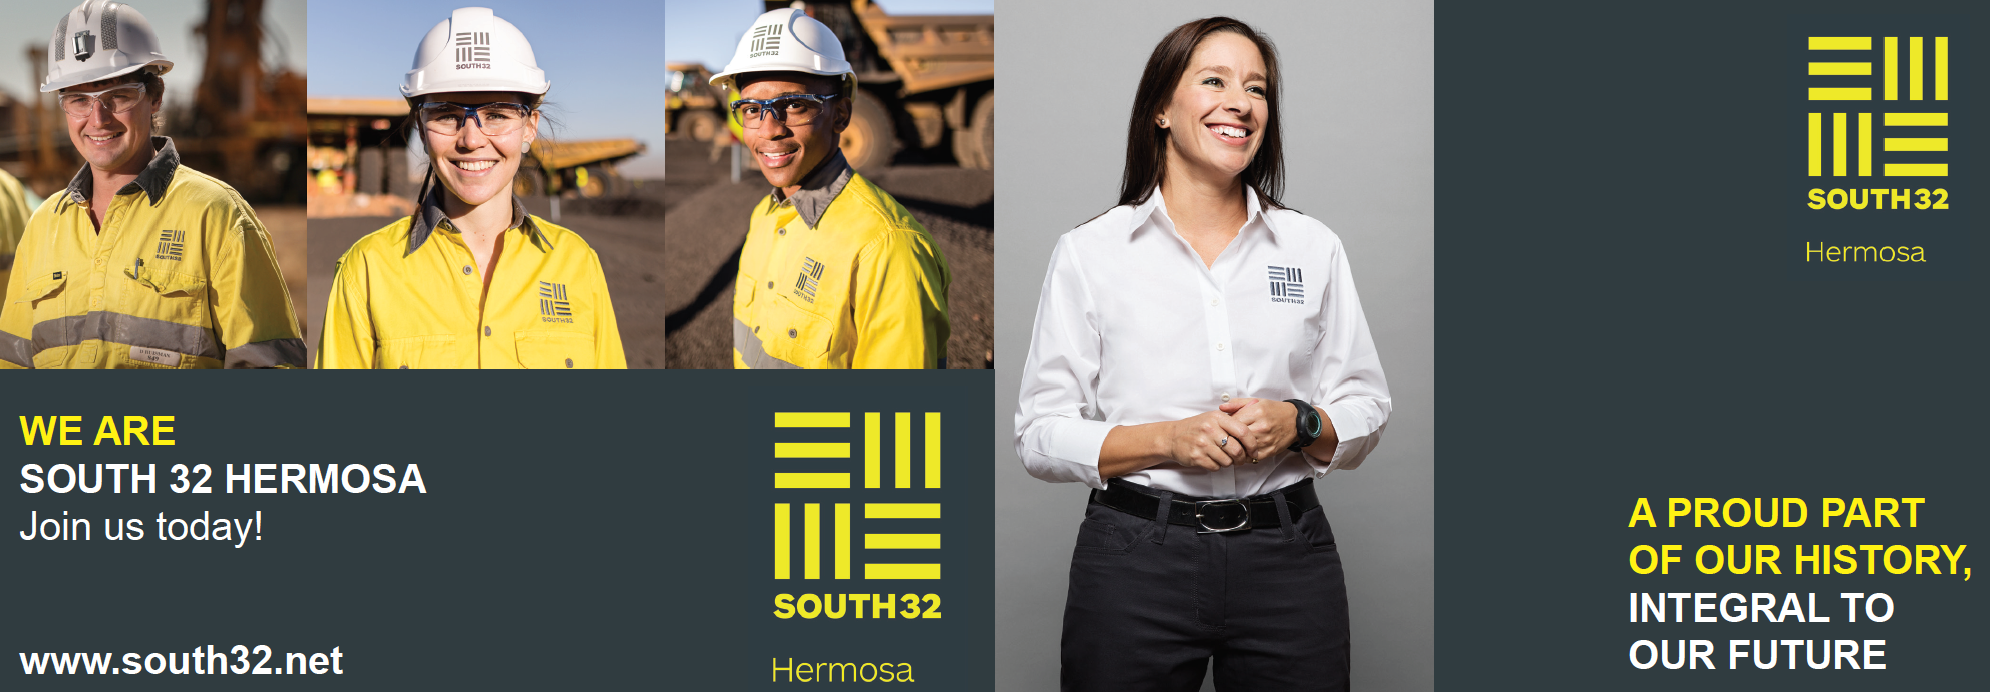 SOUTH32 Employment Brochure - Covers